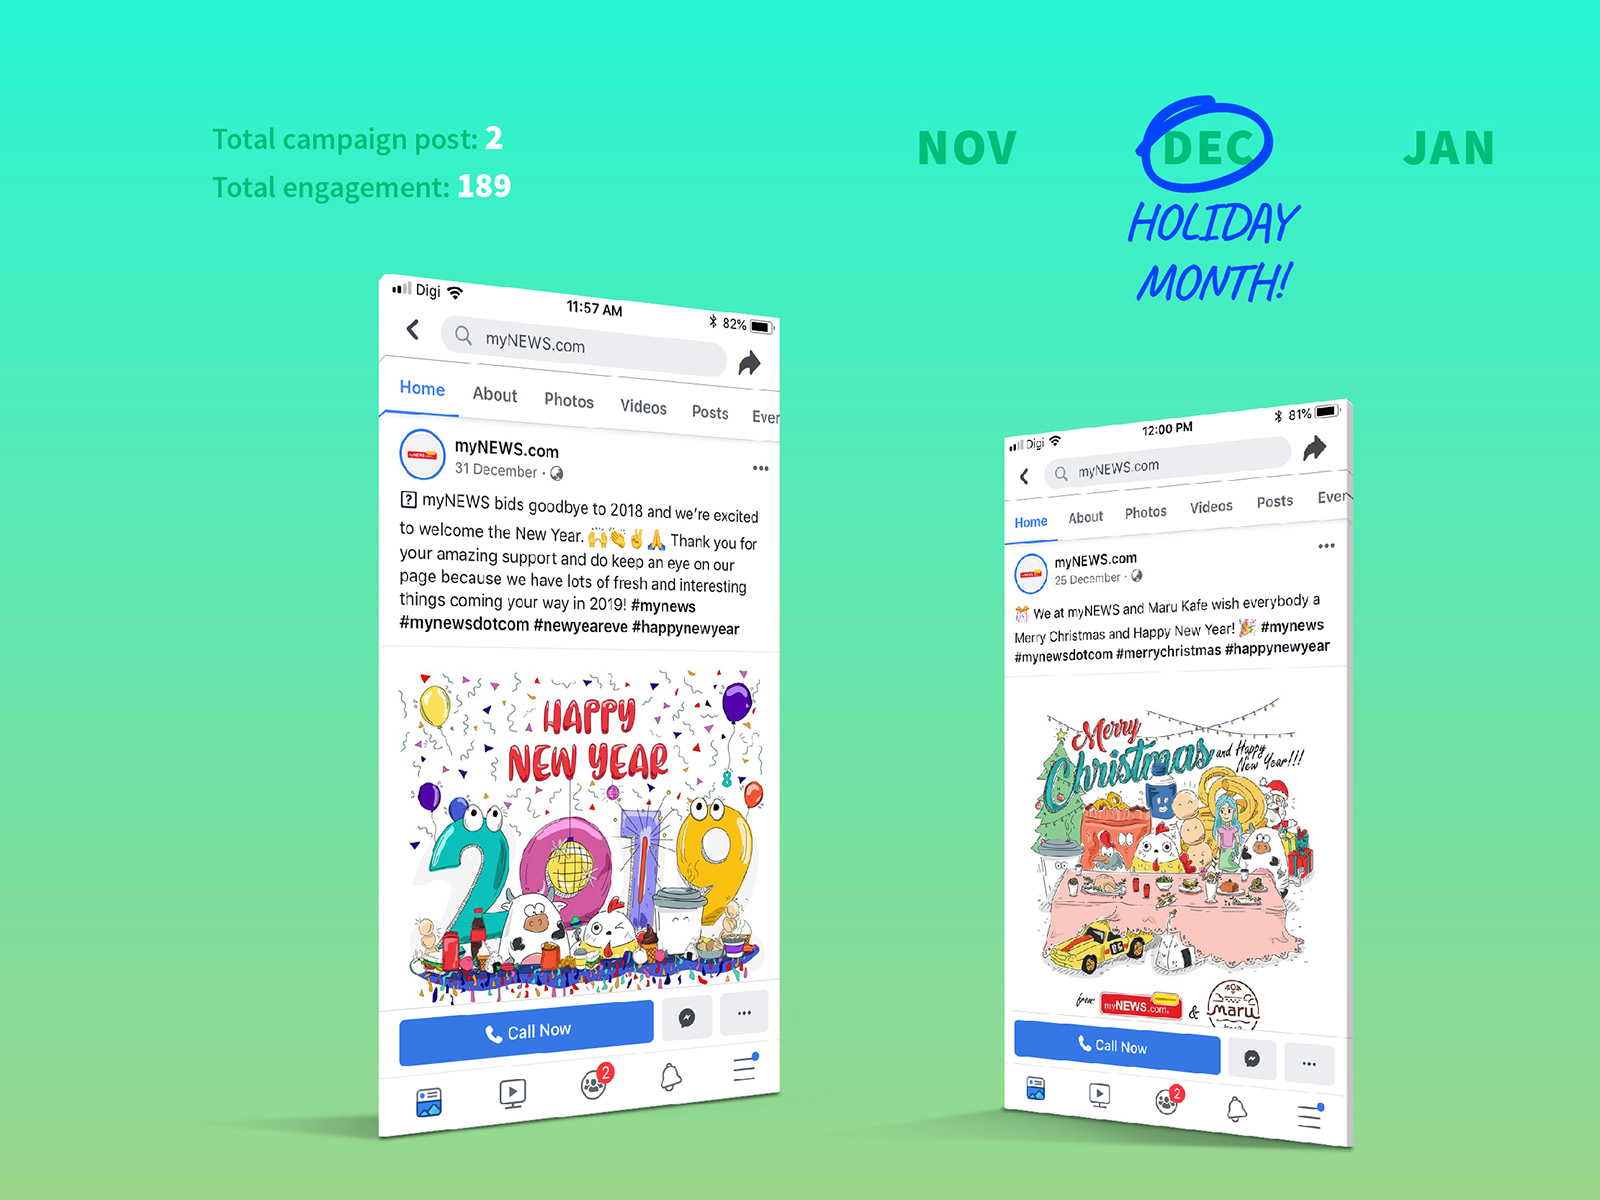 myNEWS.com social media post design for year-end and new year greetings